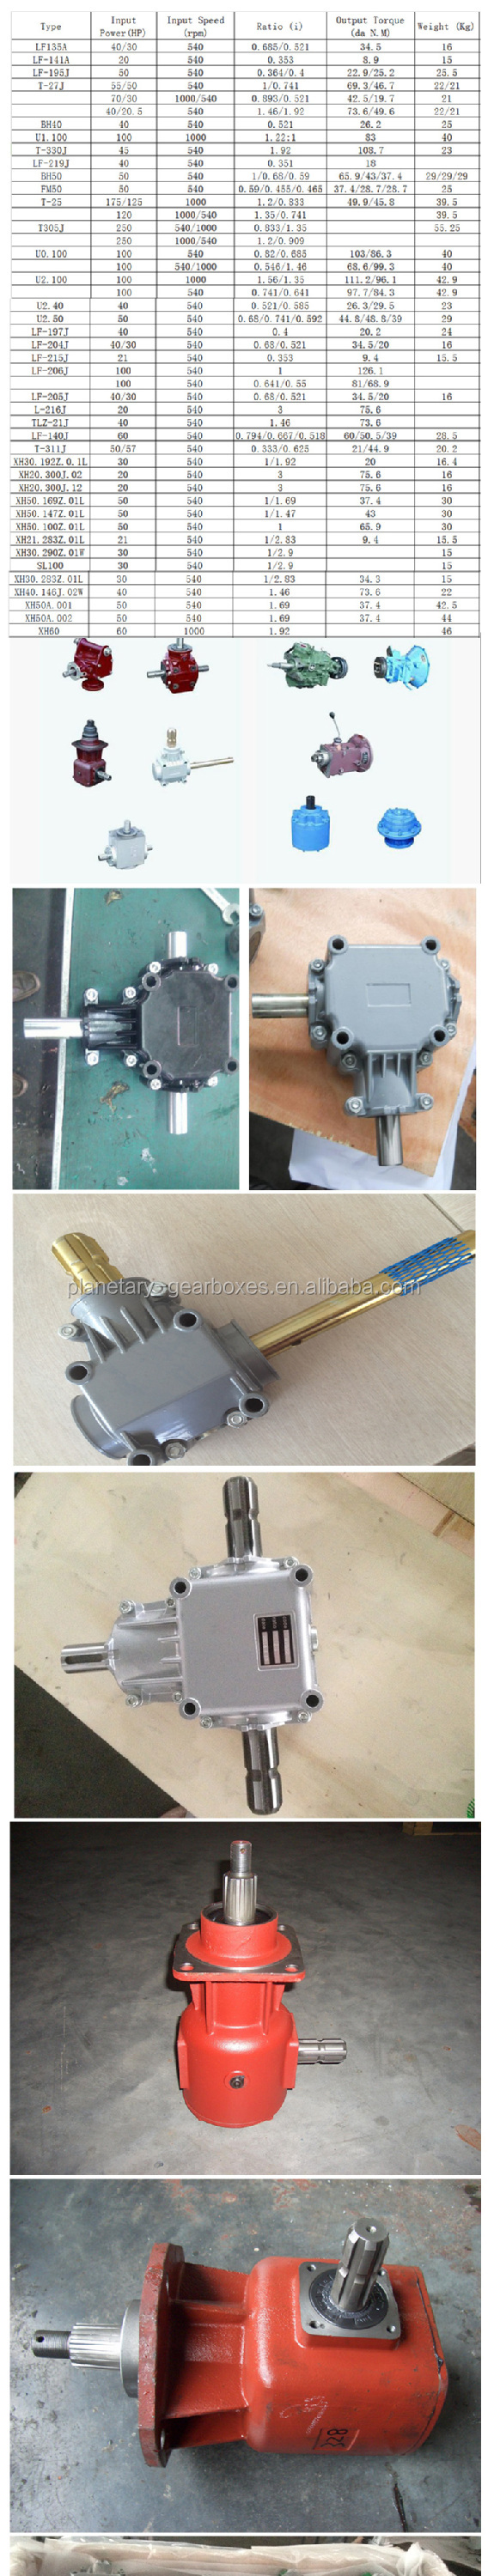 Agricultural Gearbox Agriculture bevel gearbox Agricultural Comer Gearbox